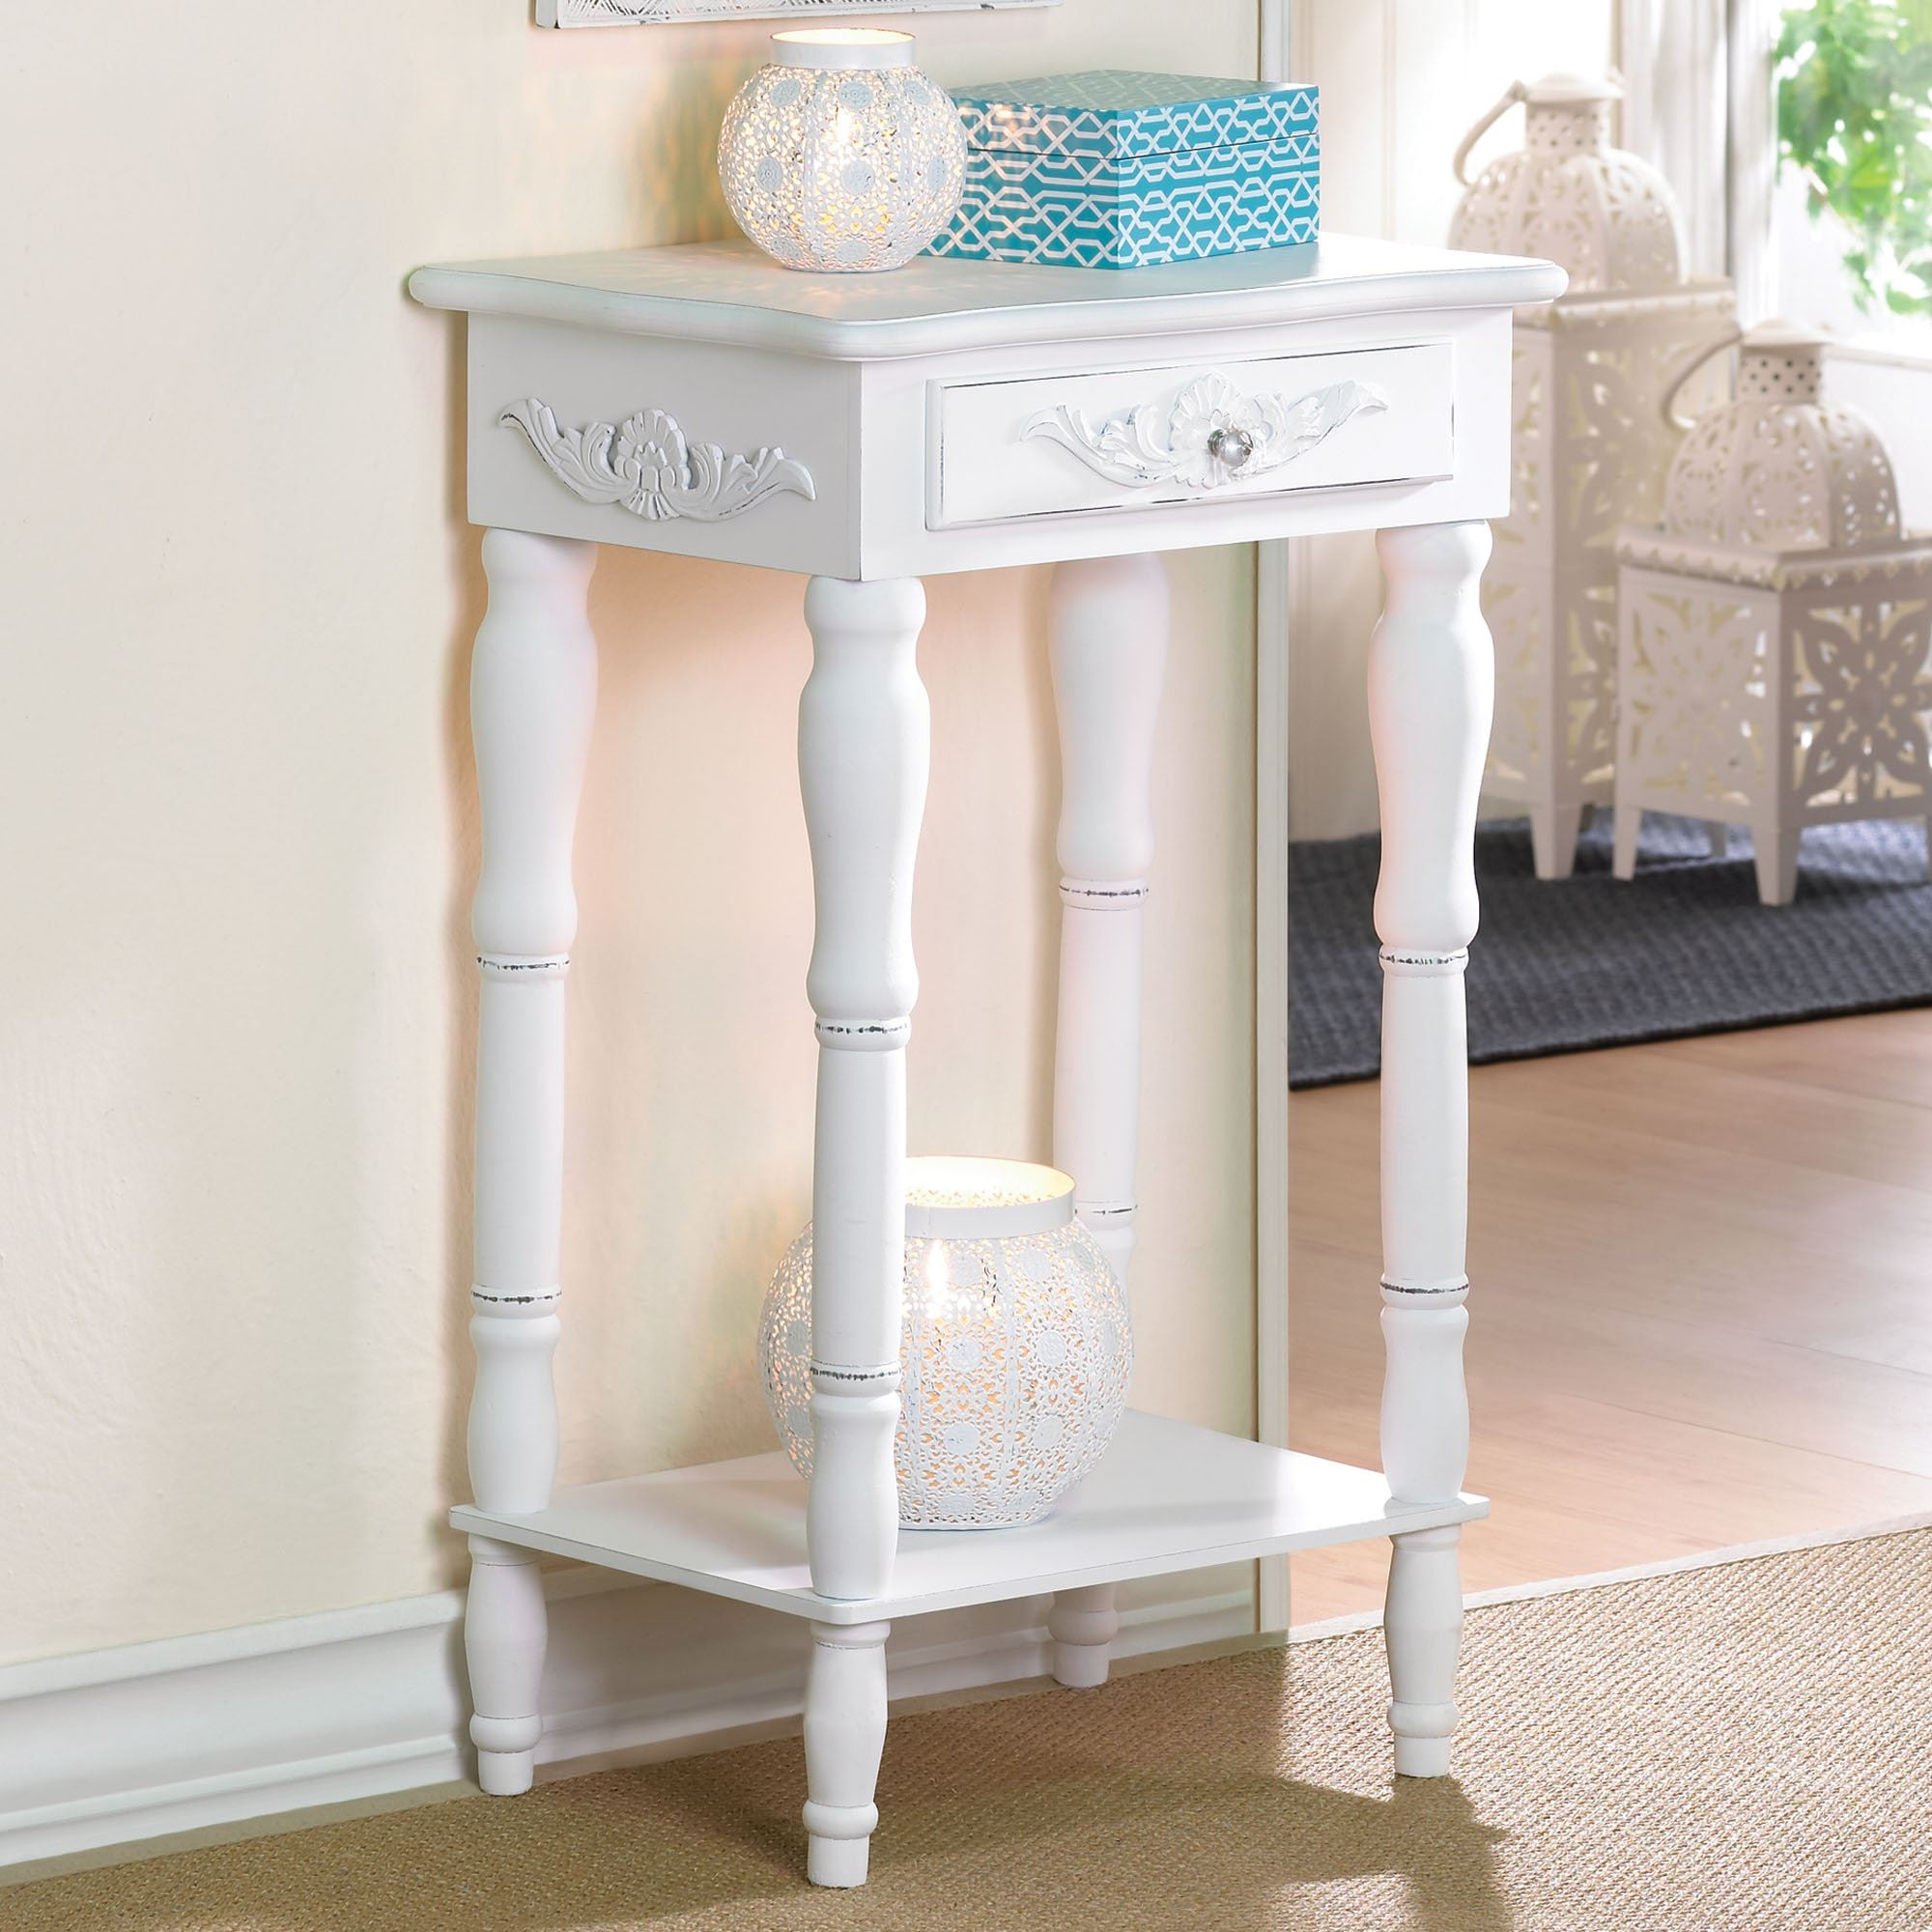 cosenza antique white accent table with drawer small shelves touch zoom livingroom side tables queen bedroom sets under west elm round dining lenovo magnussen console medium oak